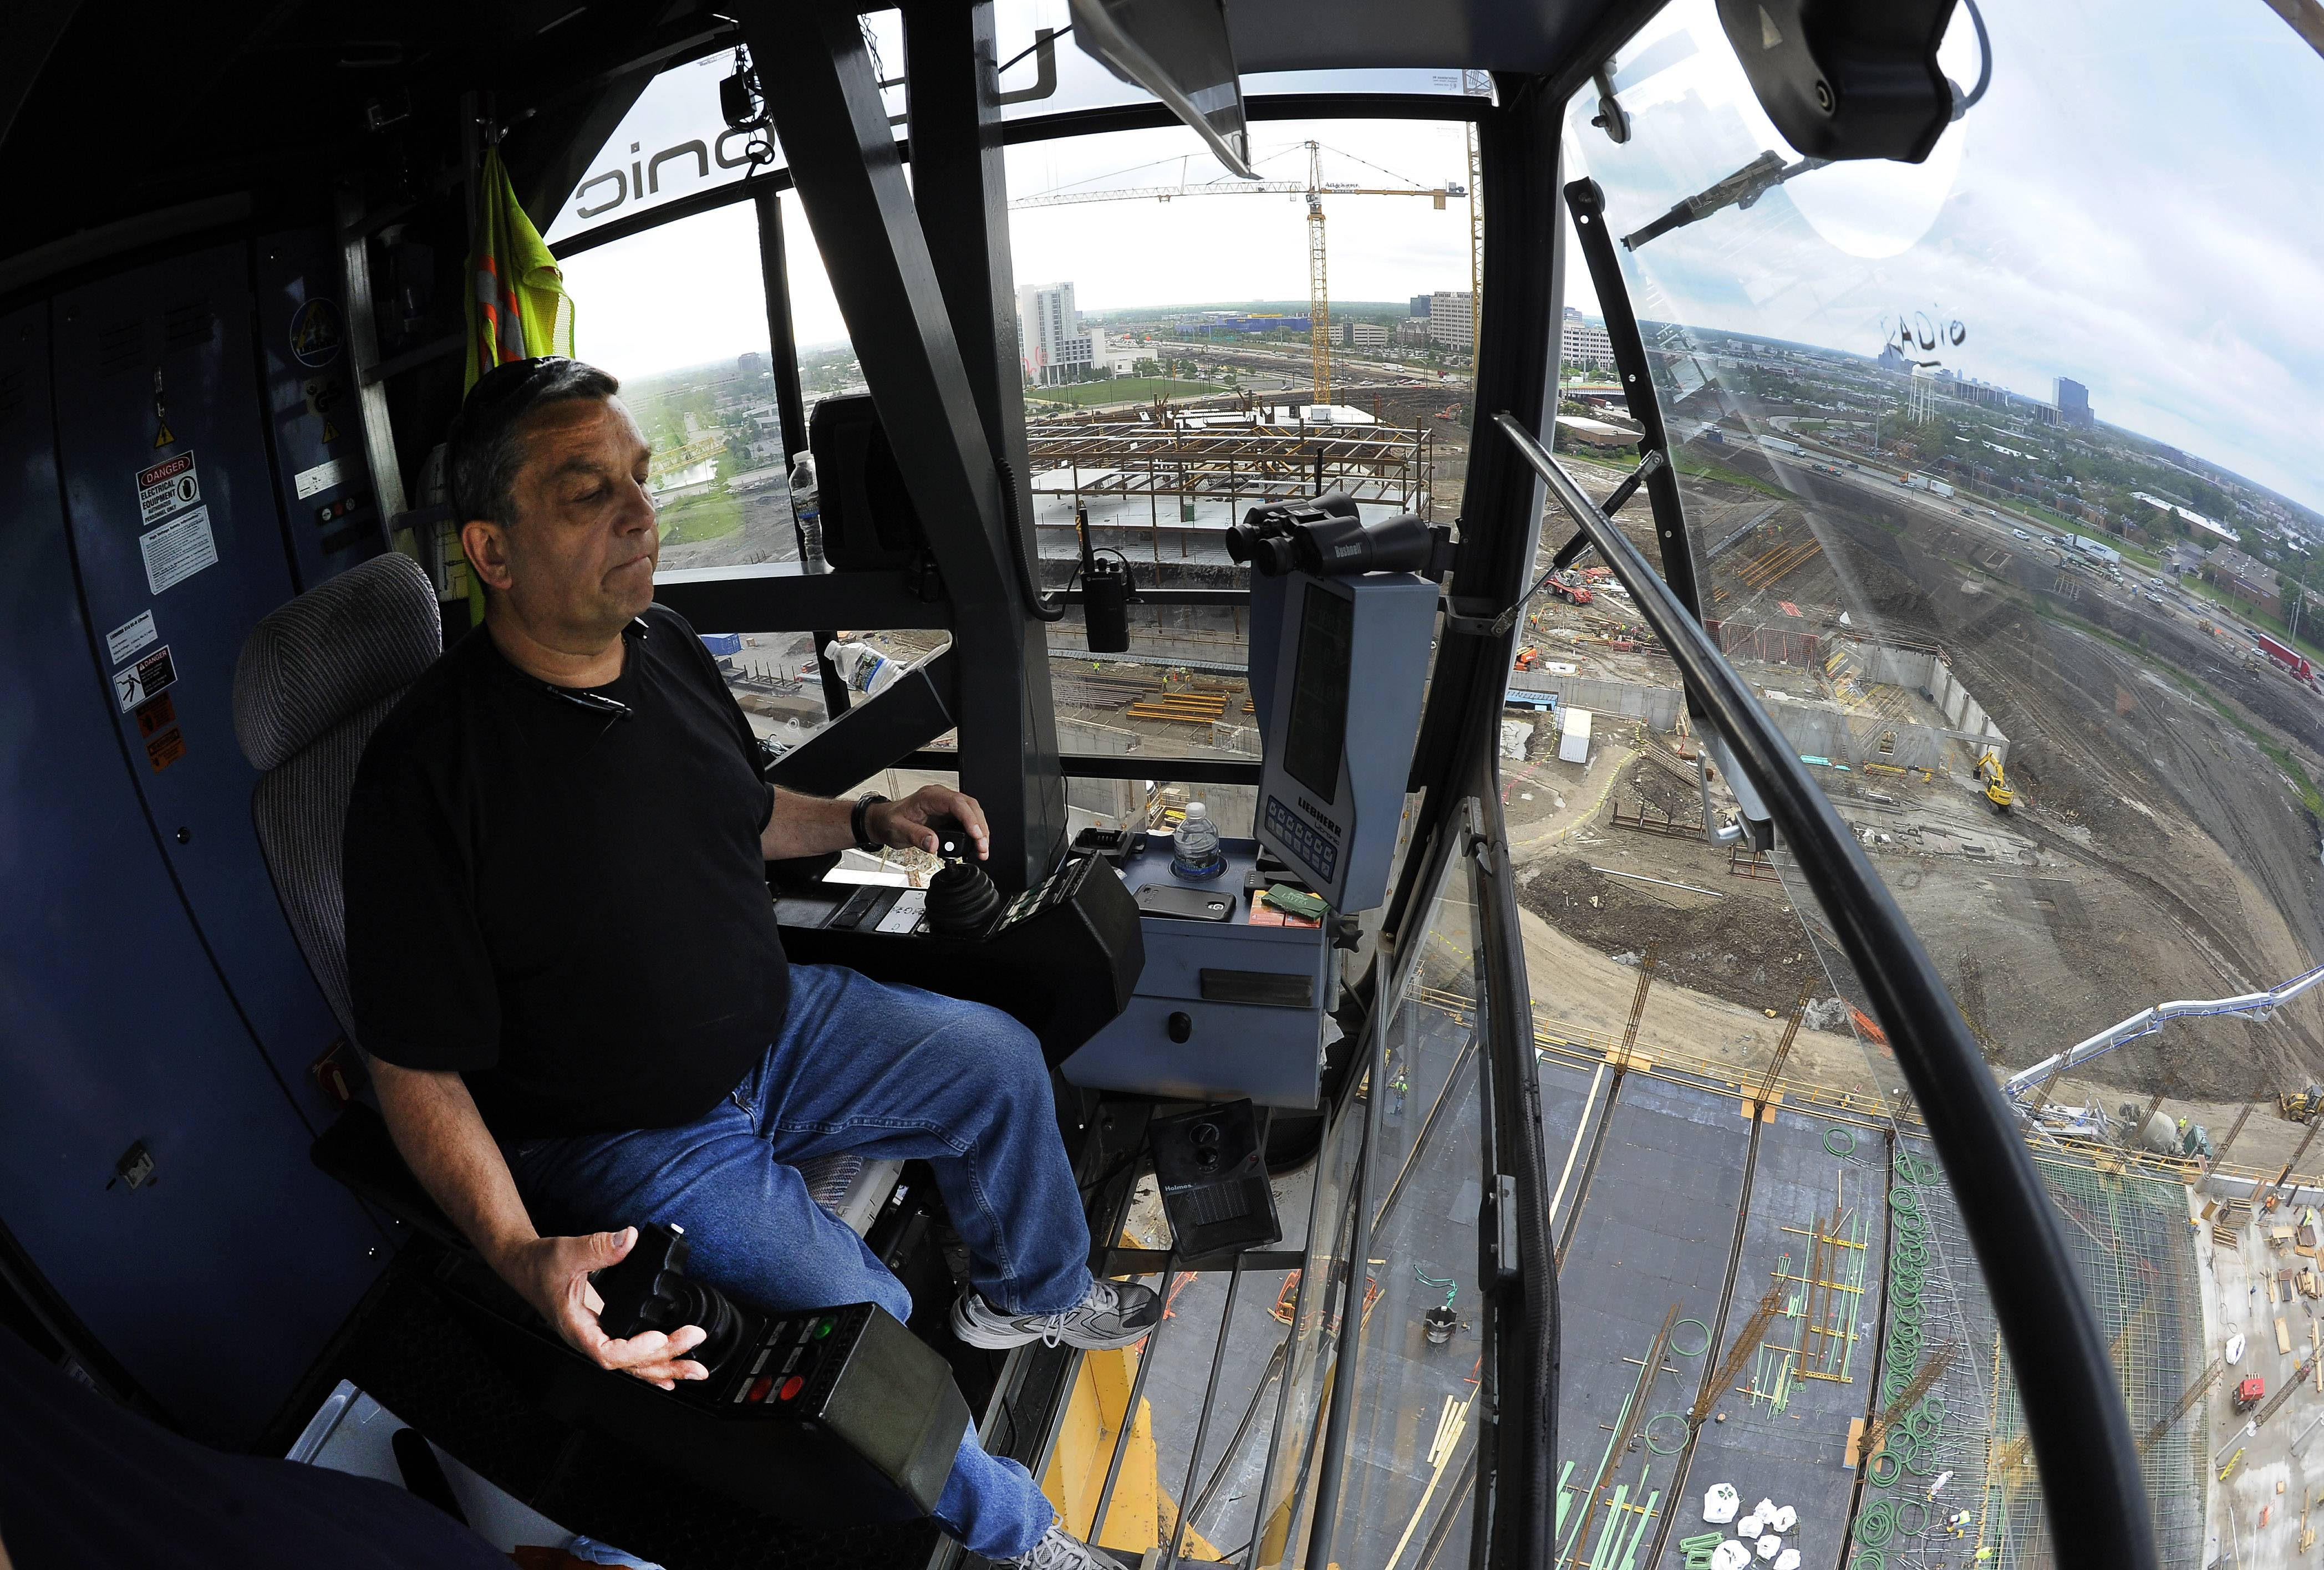 A view from a high seat: What it's like to operate a construction crane